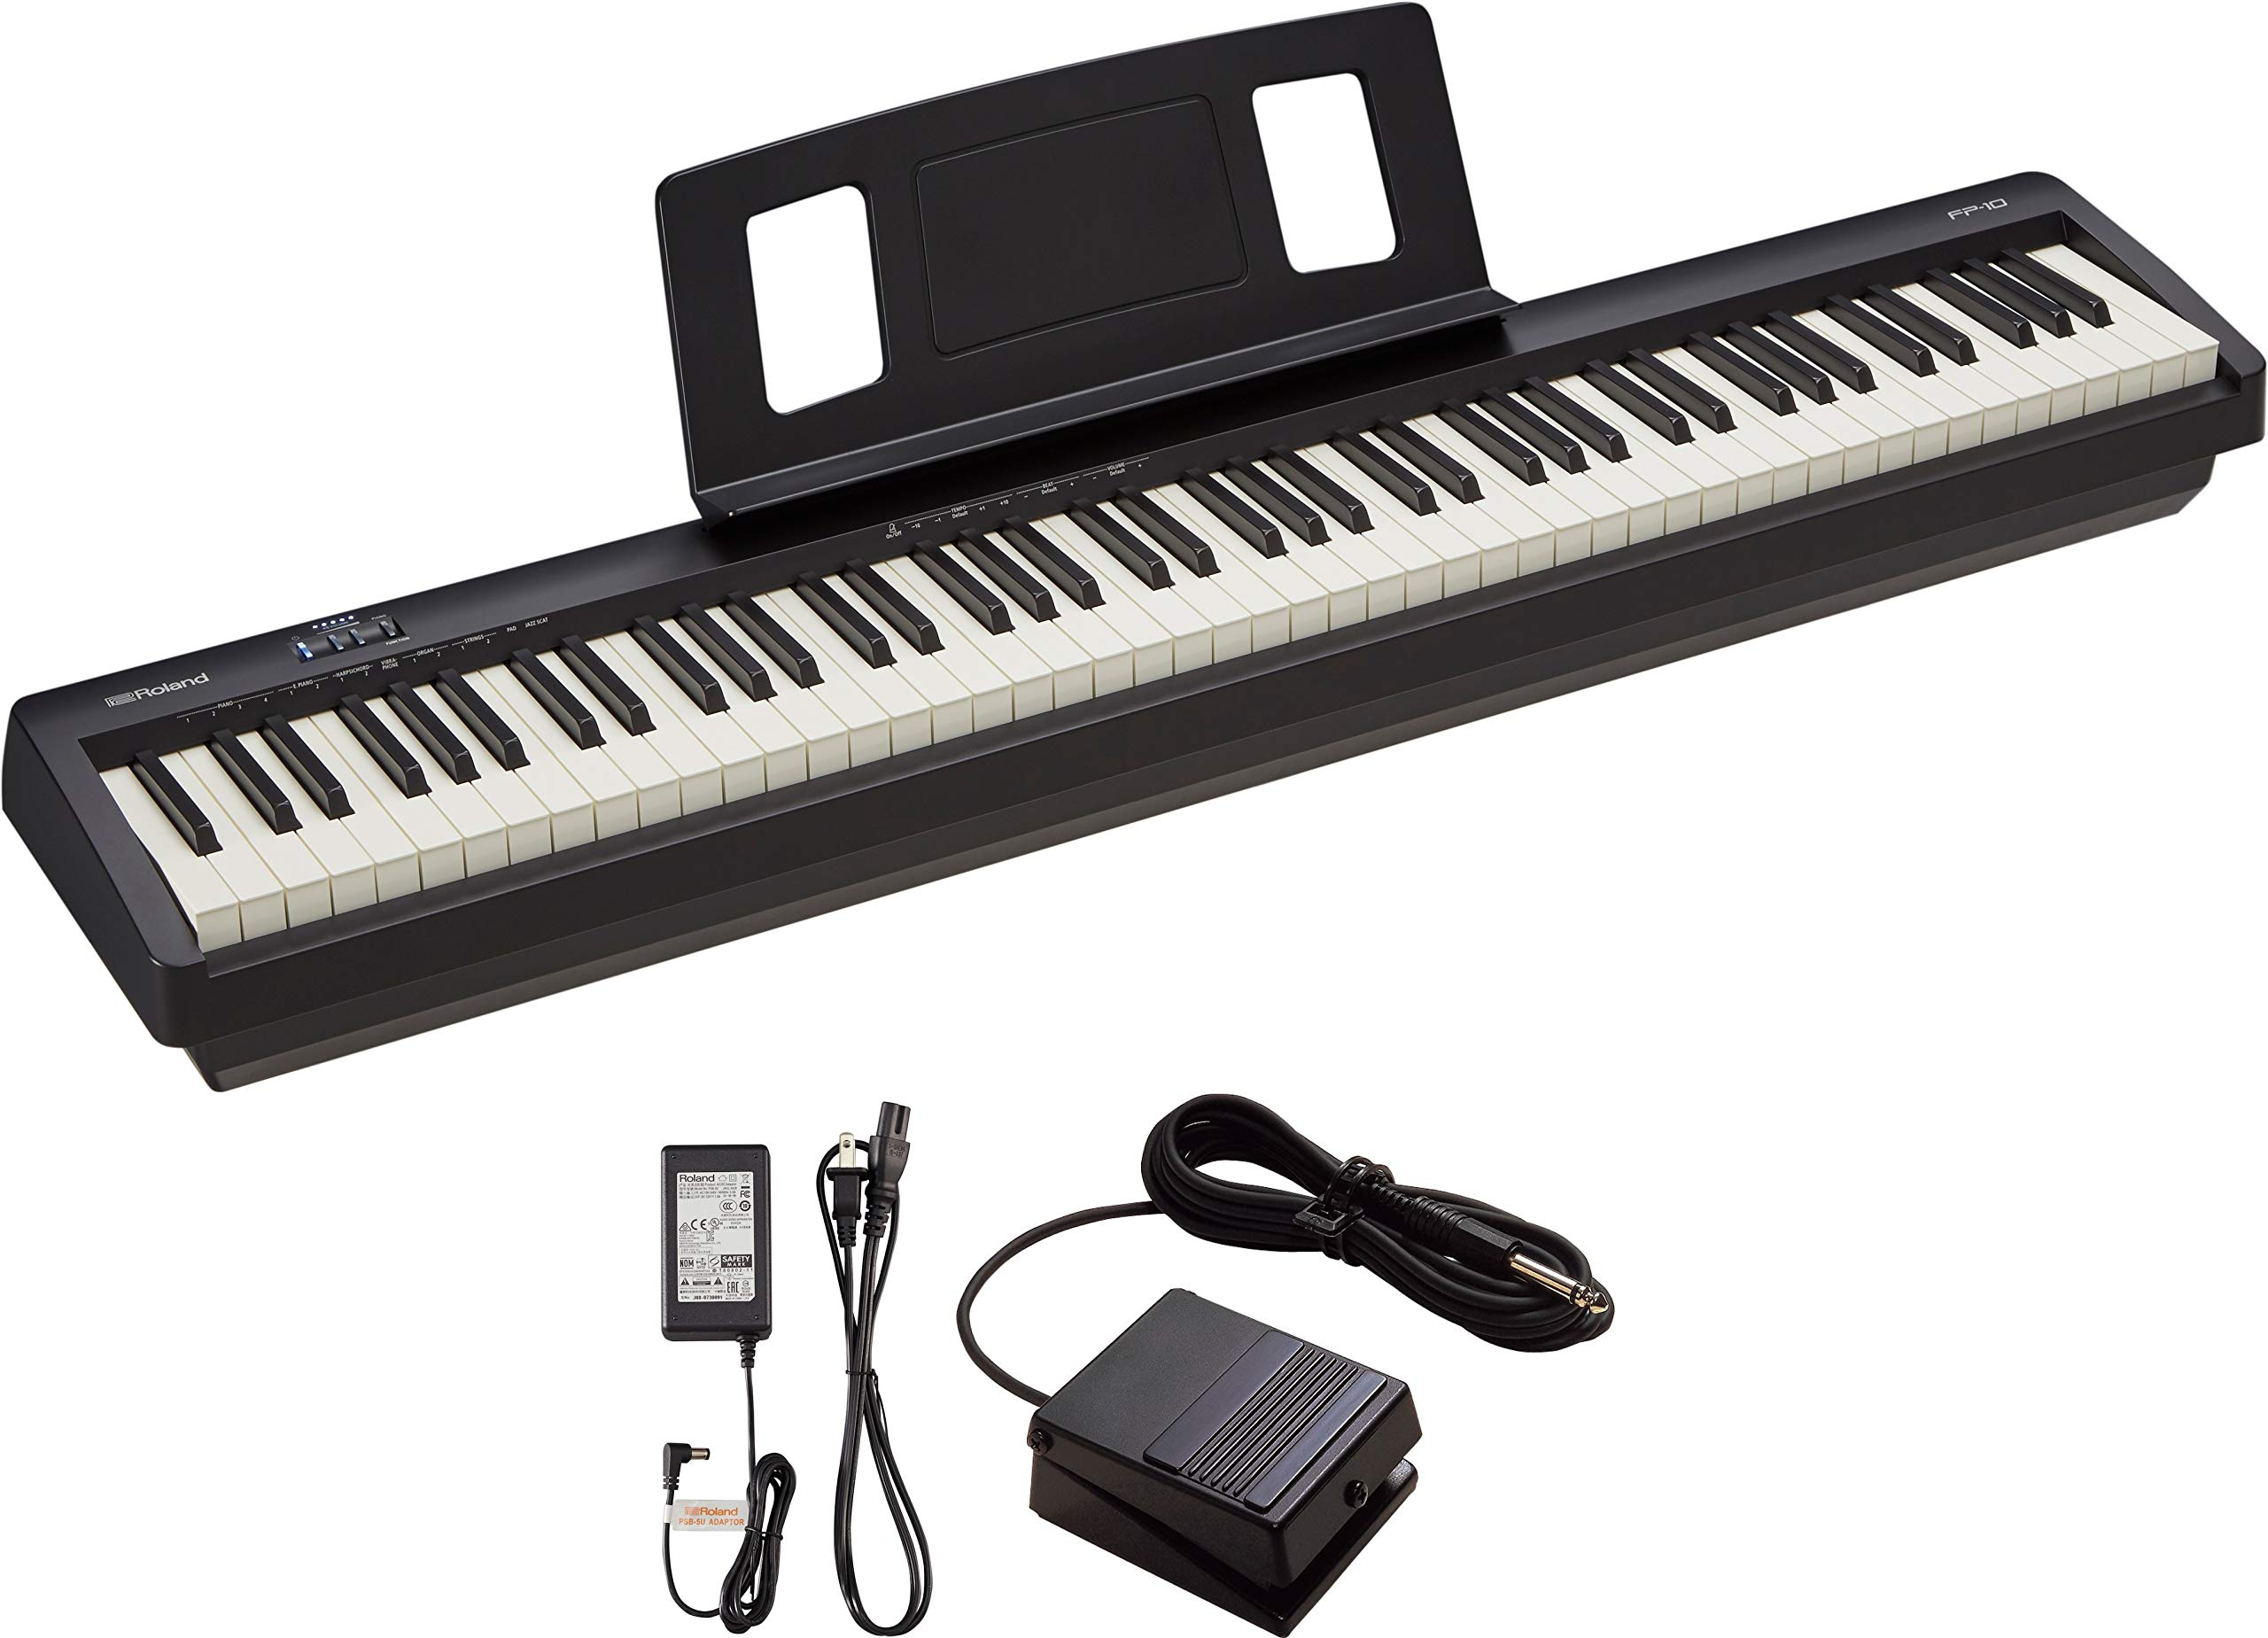 ROLAND FP-10 Digital Piano - Buy Online in Congo. | roland ...